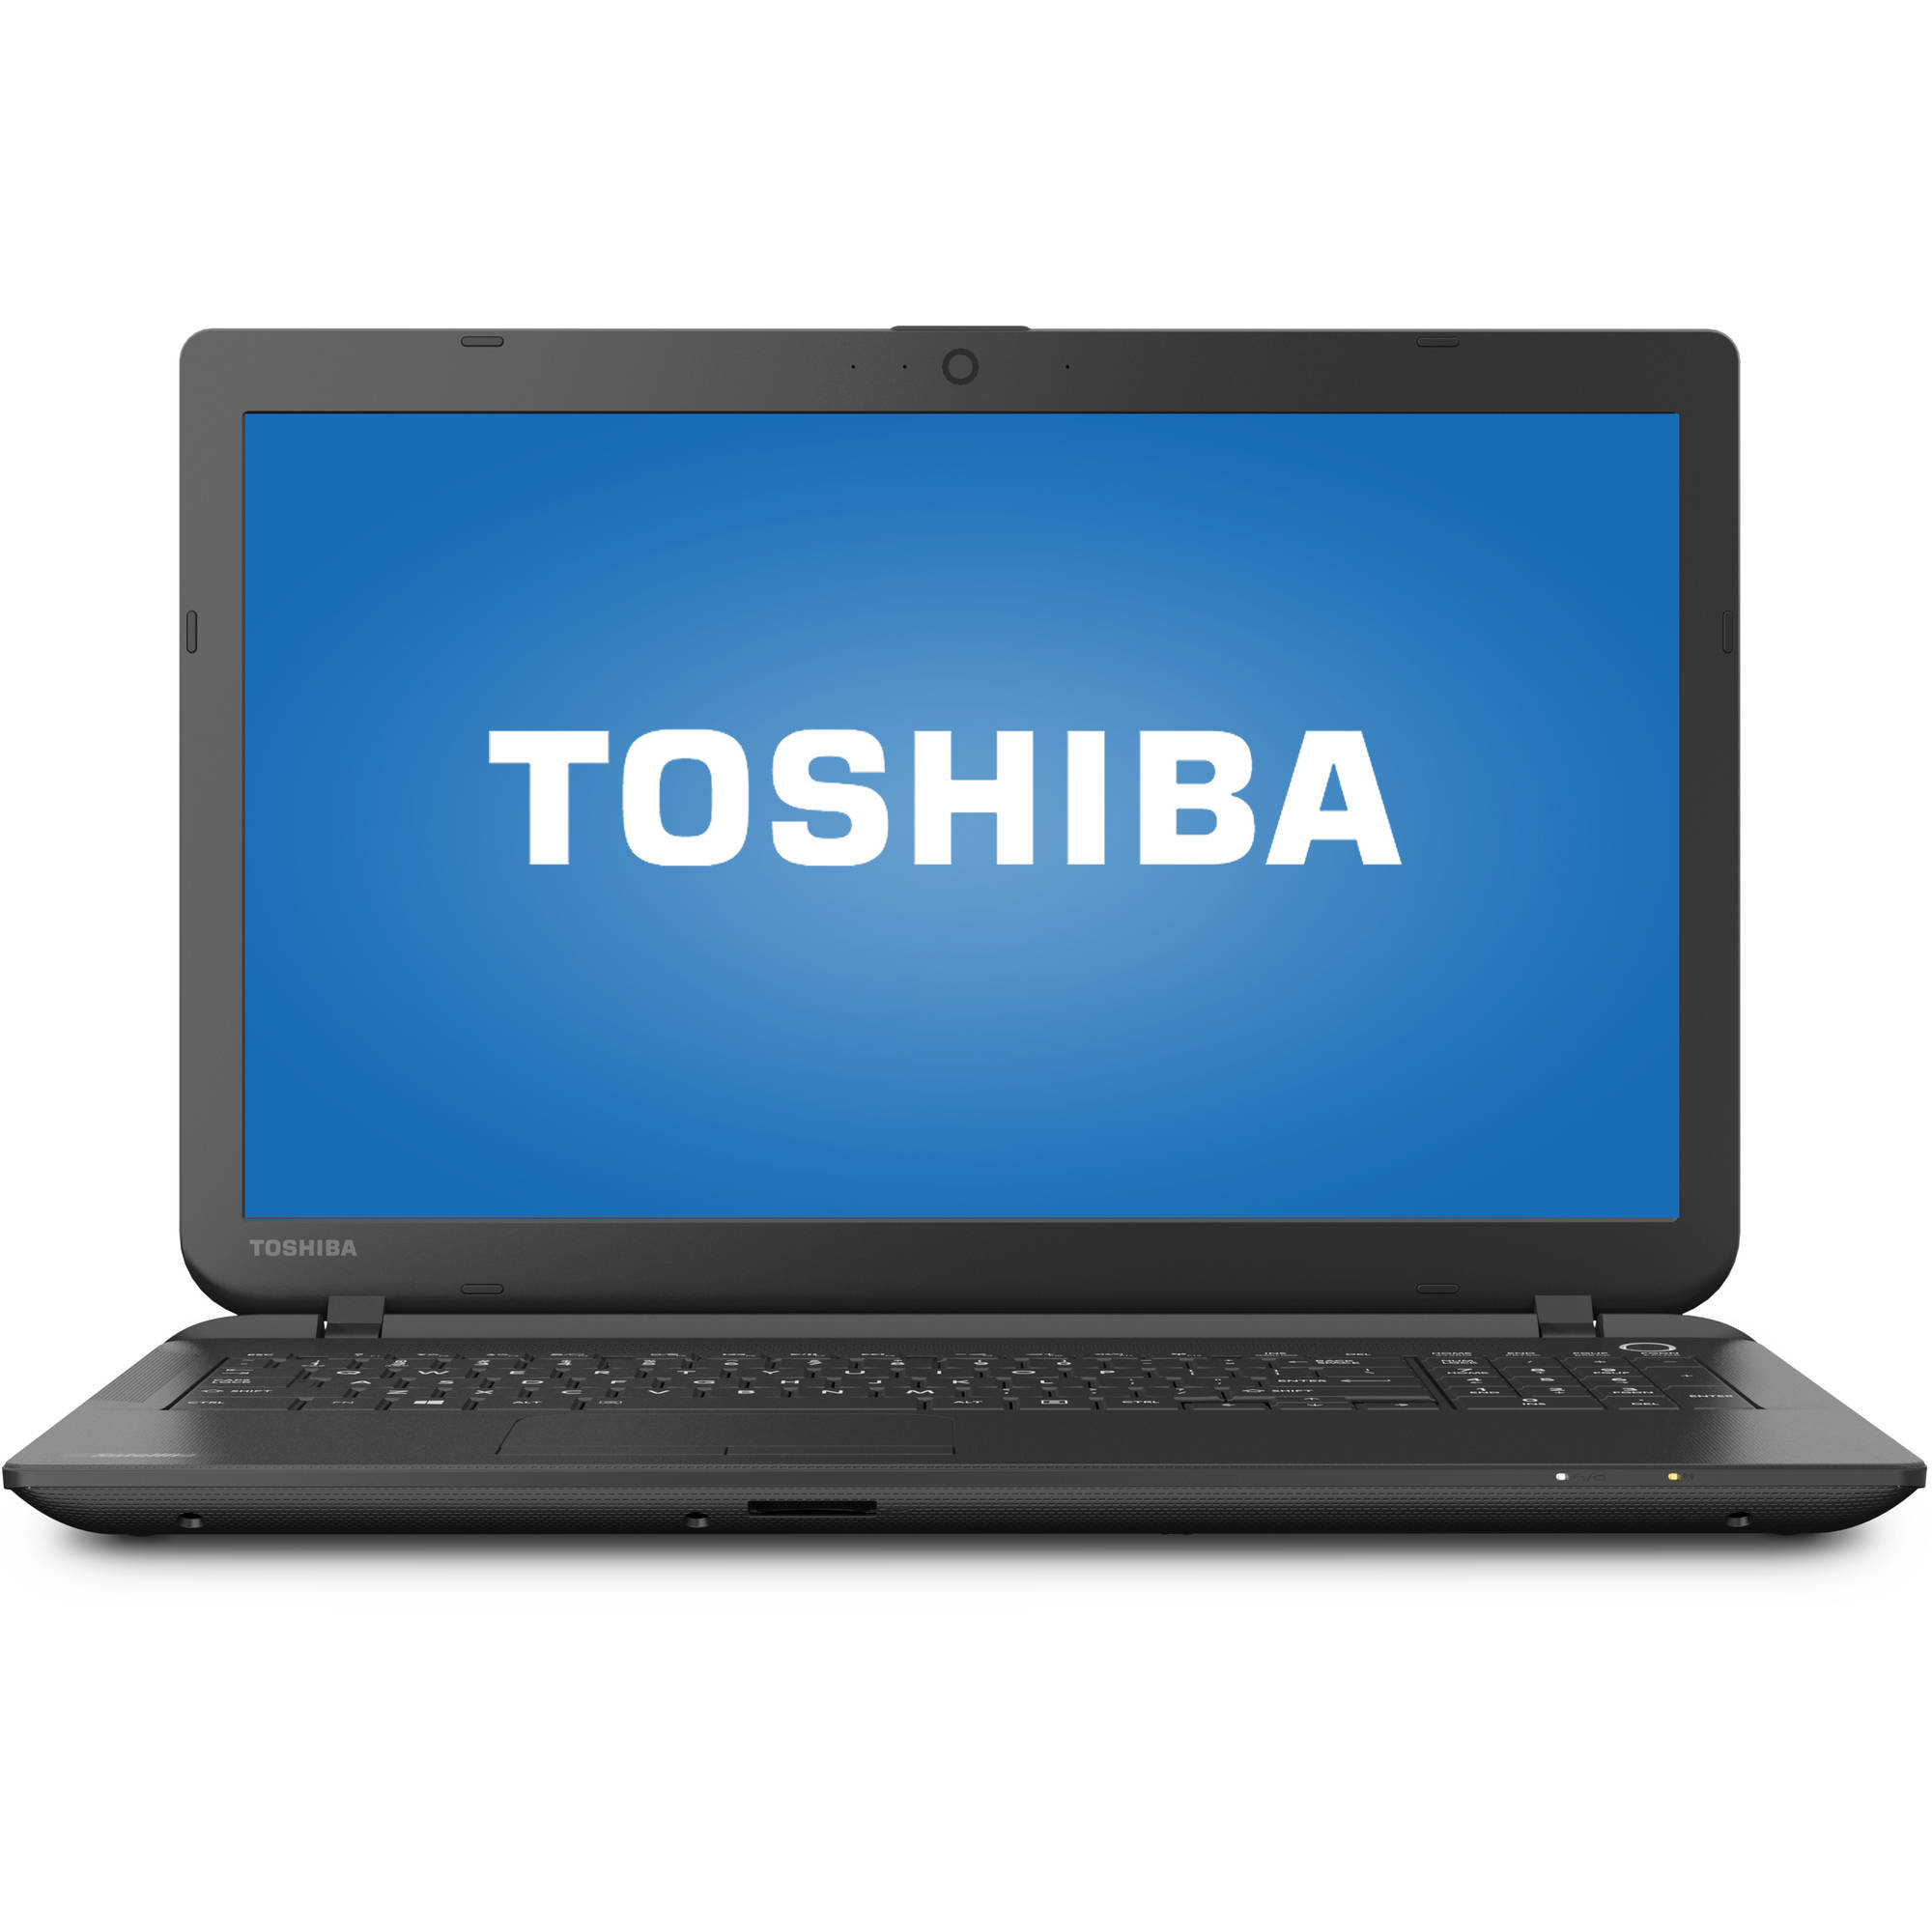 Toshiba Satellite C55-B5242 15.6 LED Intel Pentium N3540 2.16GHz 4GB RAM 750GB HDD Windows 8.1